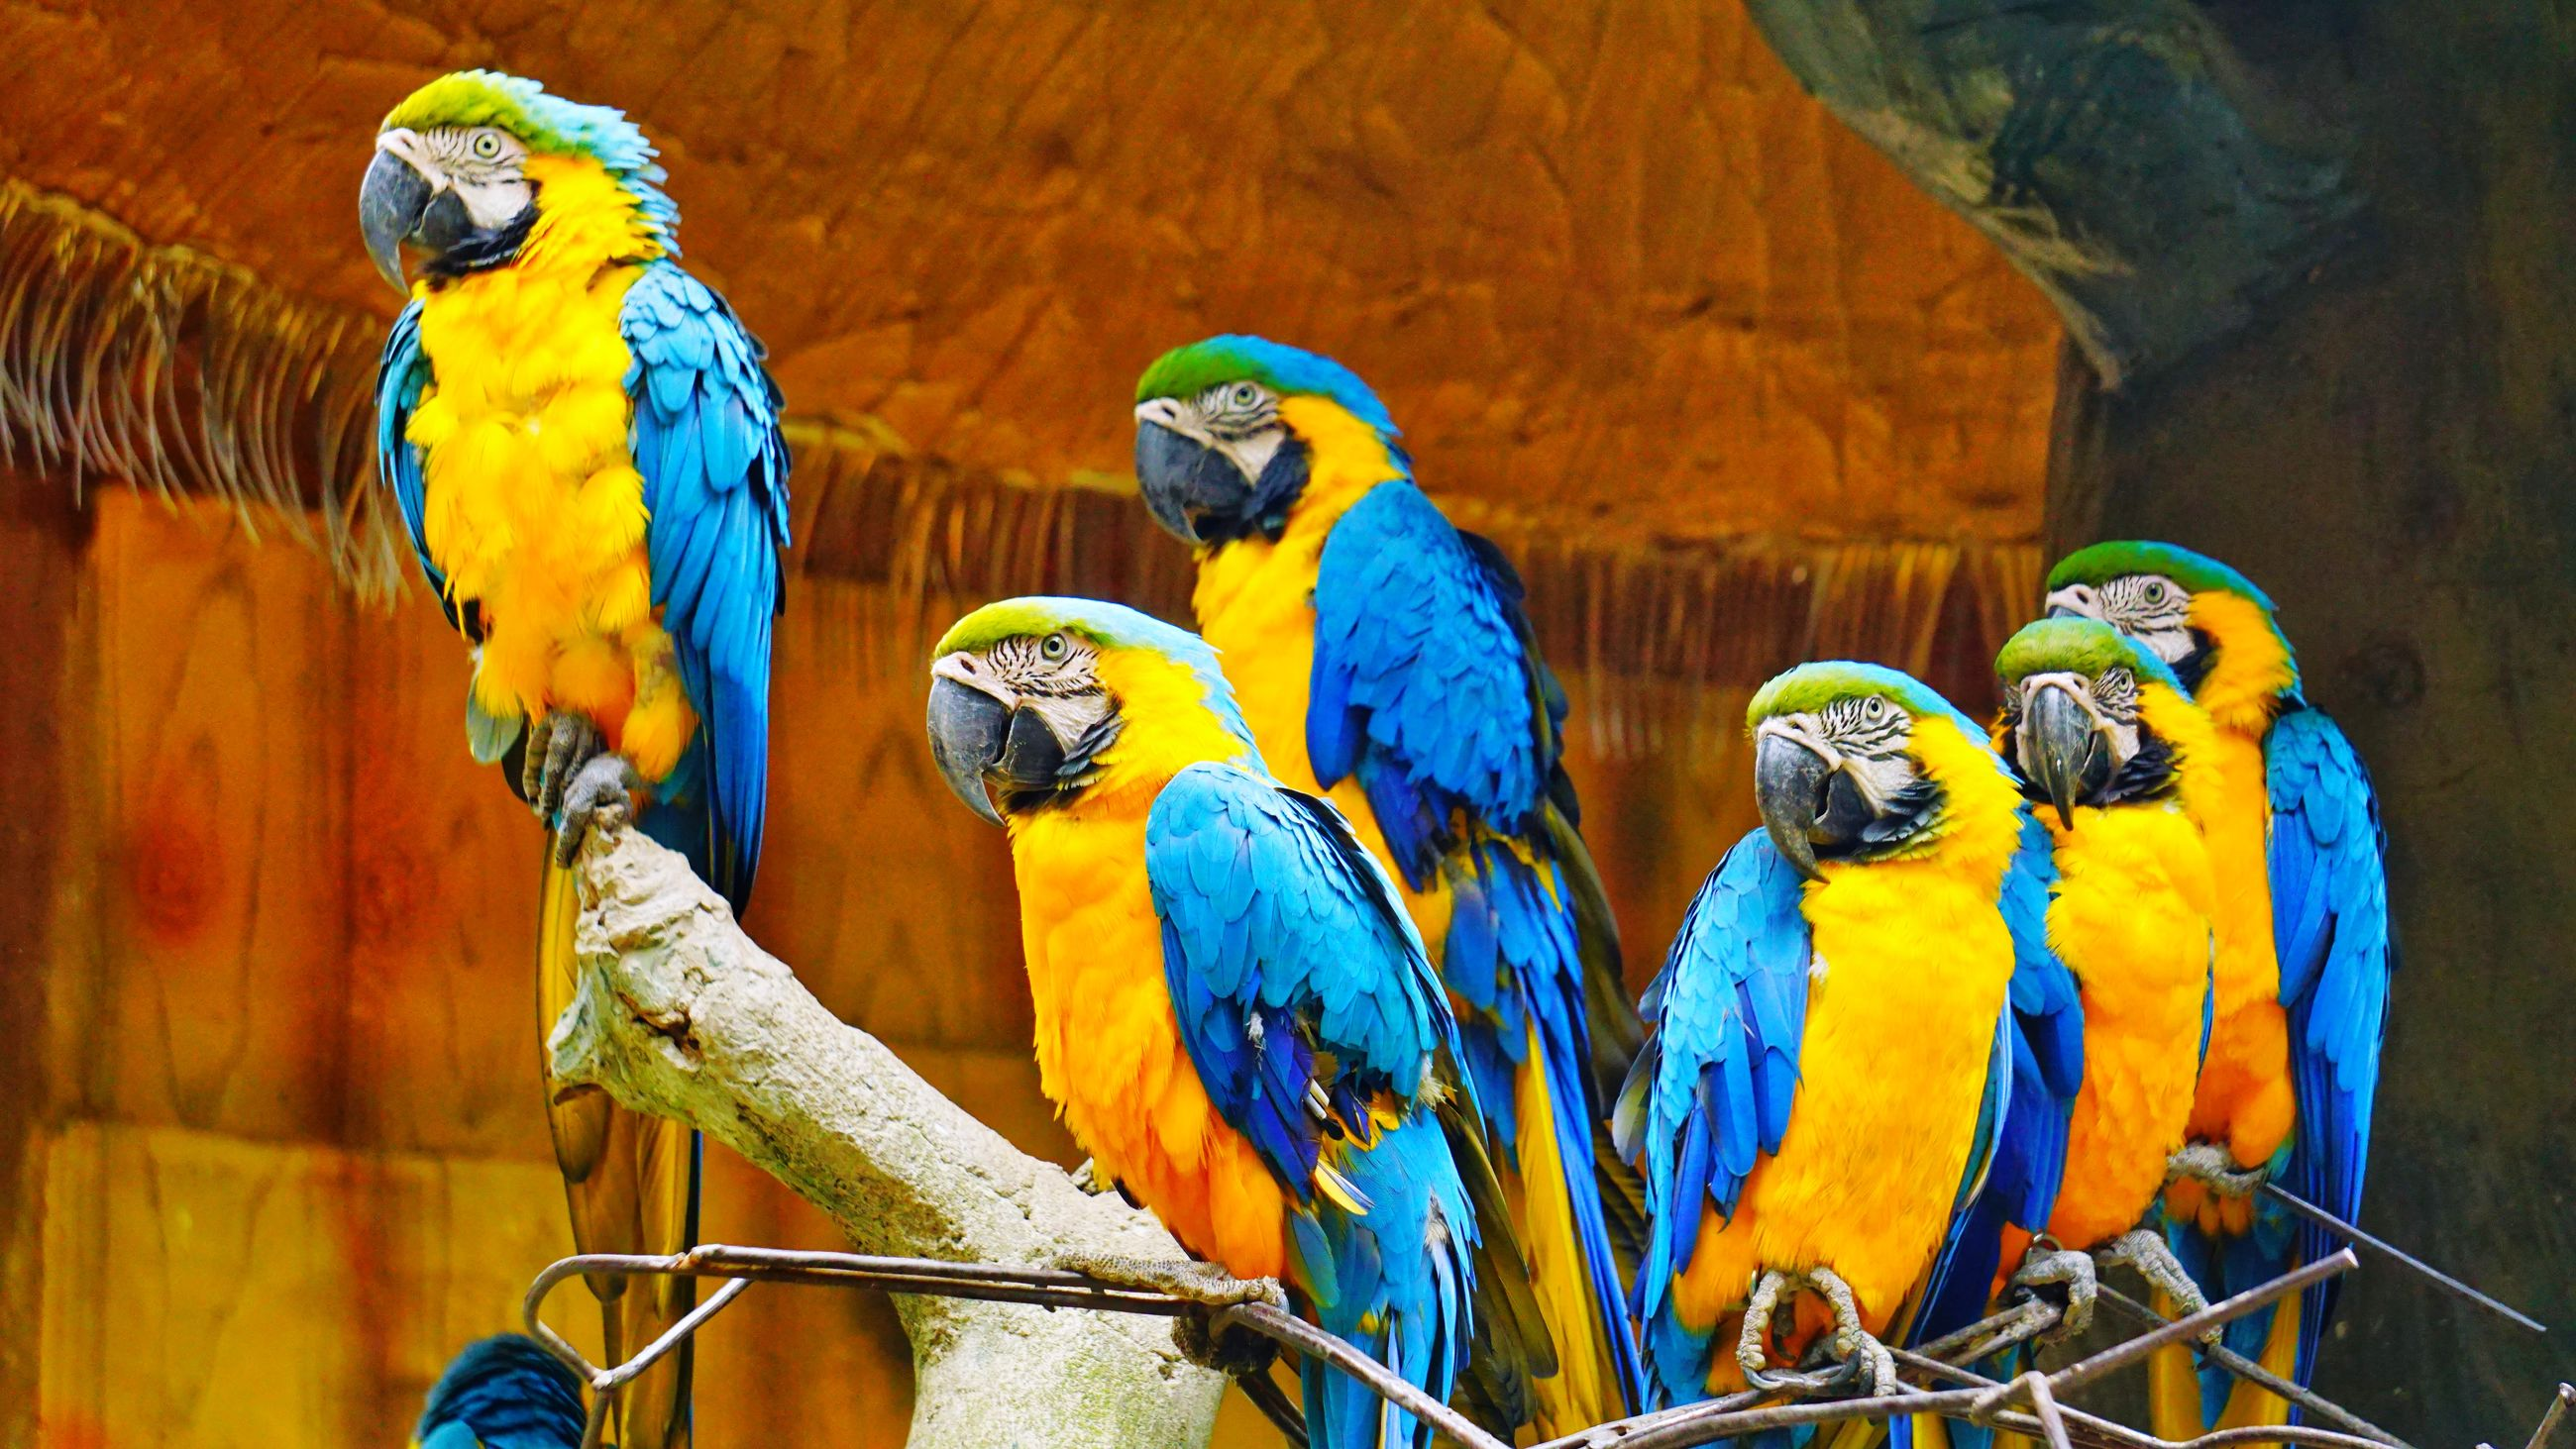 bird, group of animals, animal themes, parrot, animal wildlife, animal, vertebrate, macaw, animals in the wild, perching, gold and blue macaw, no people, focus on foreground, multi colored, blue, animals in captivity, close-up, metal, two animals, nature